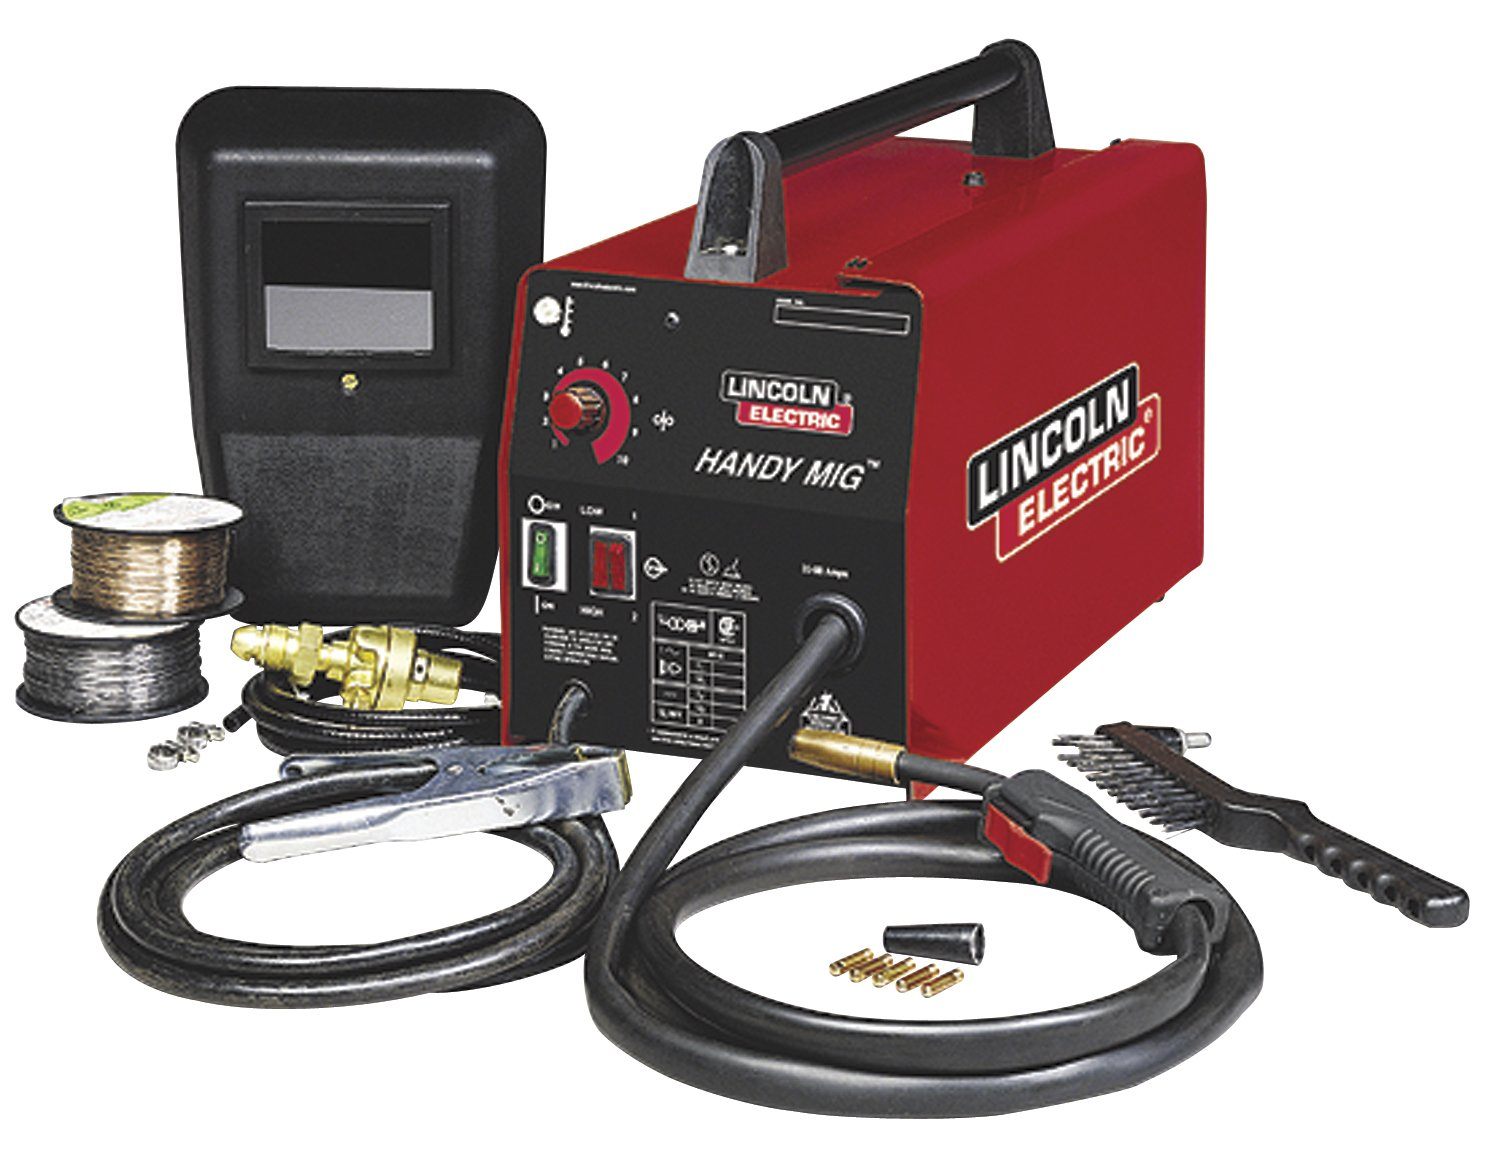 ac wire dc sp arc lincoln feed com equipment welding dp welder school amazon